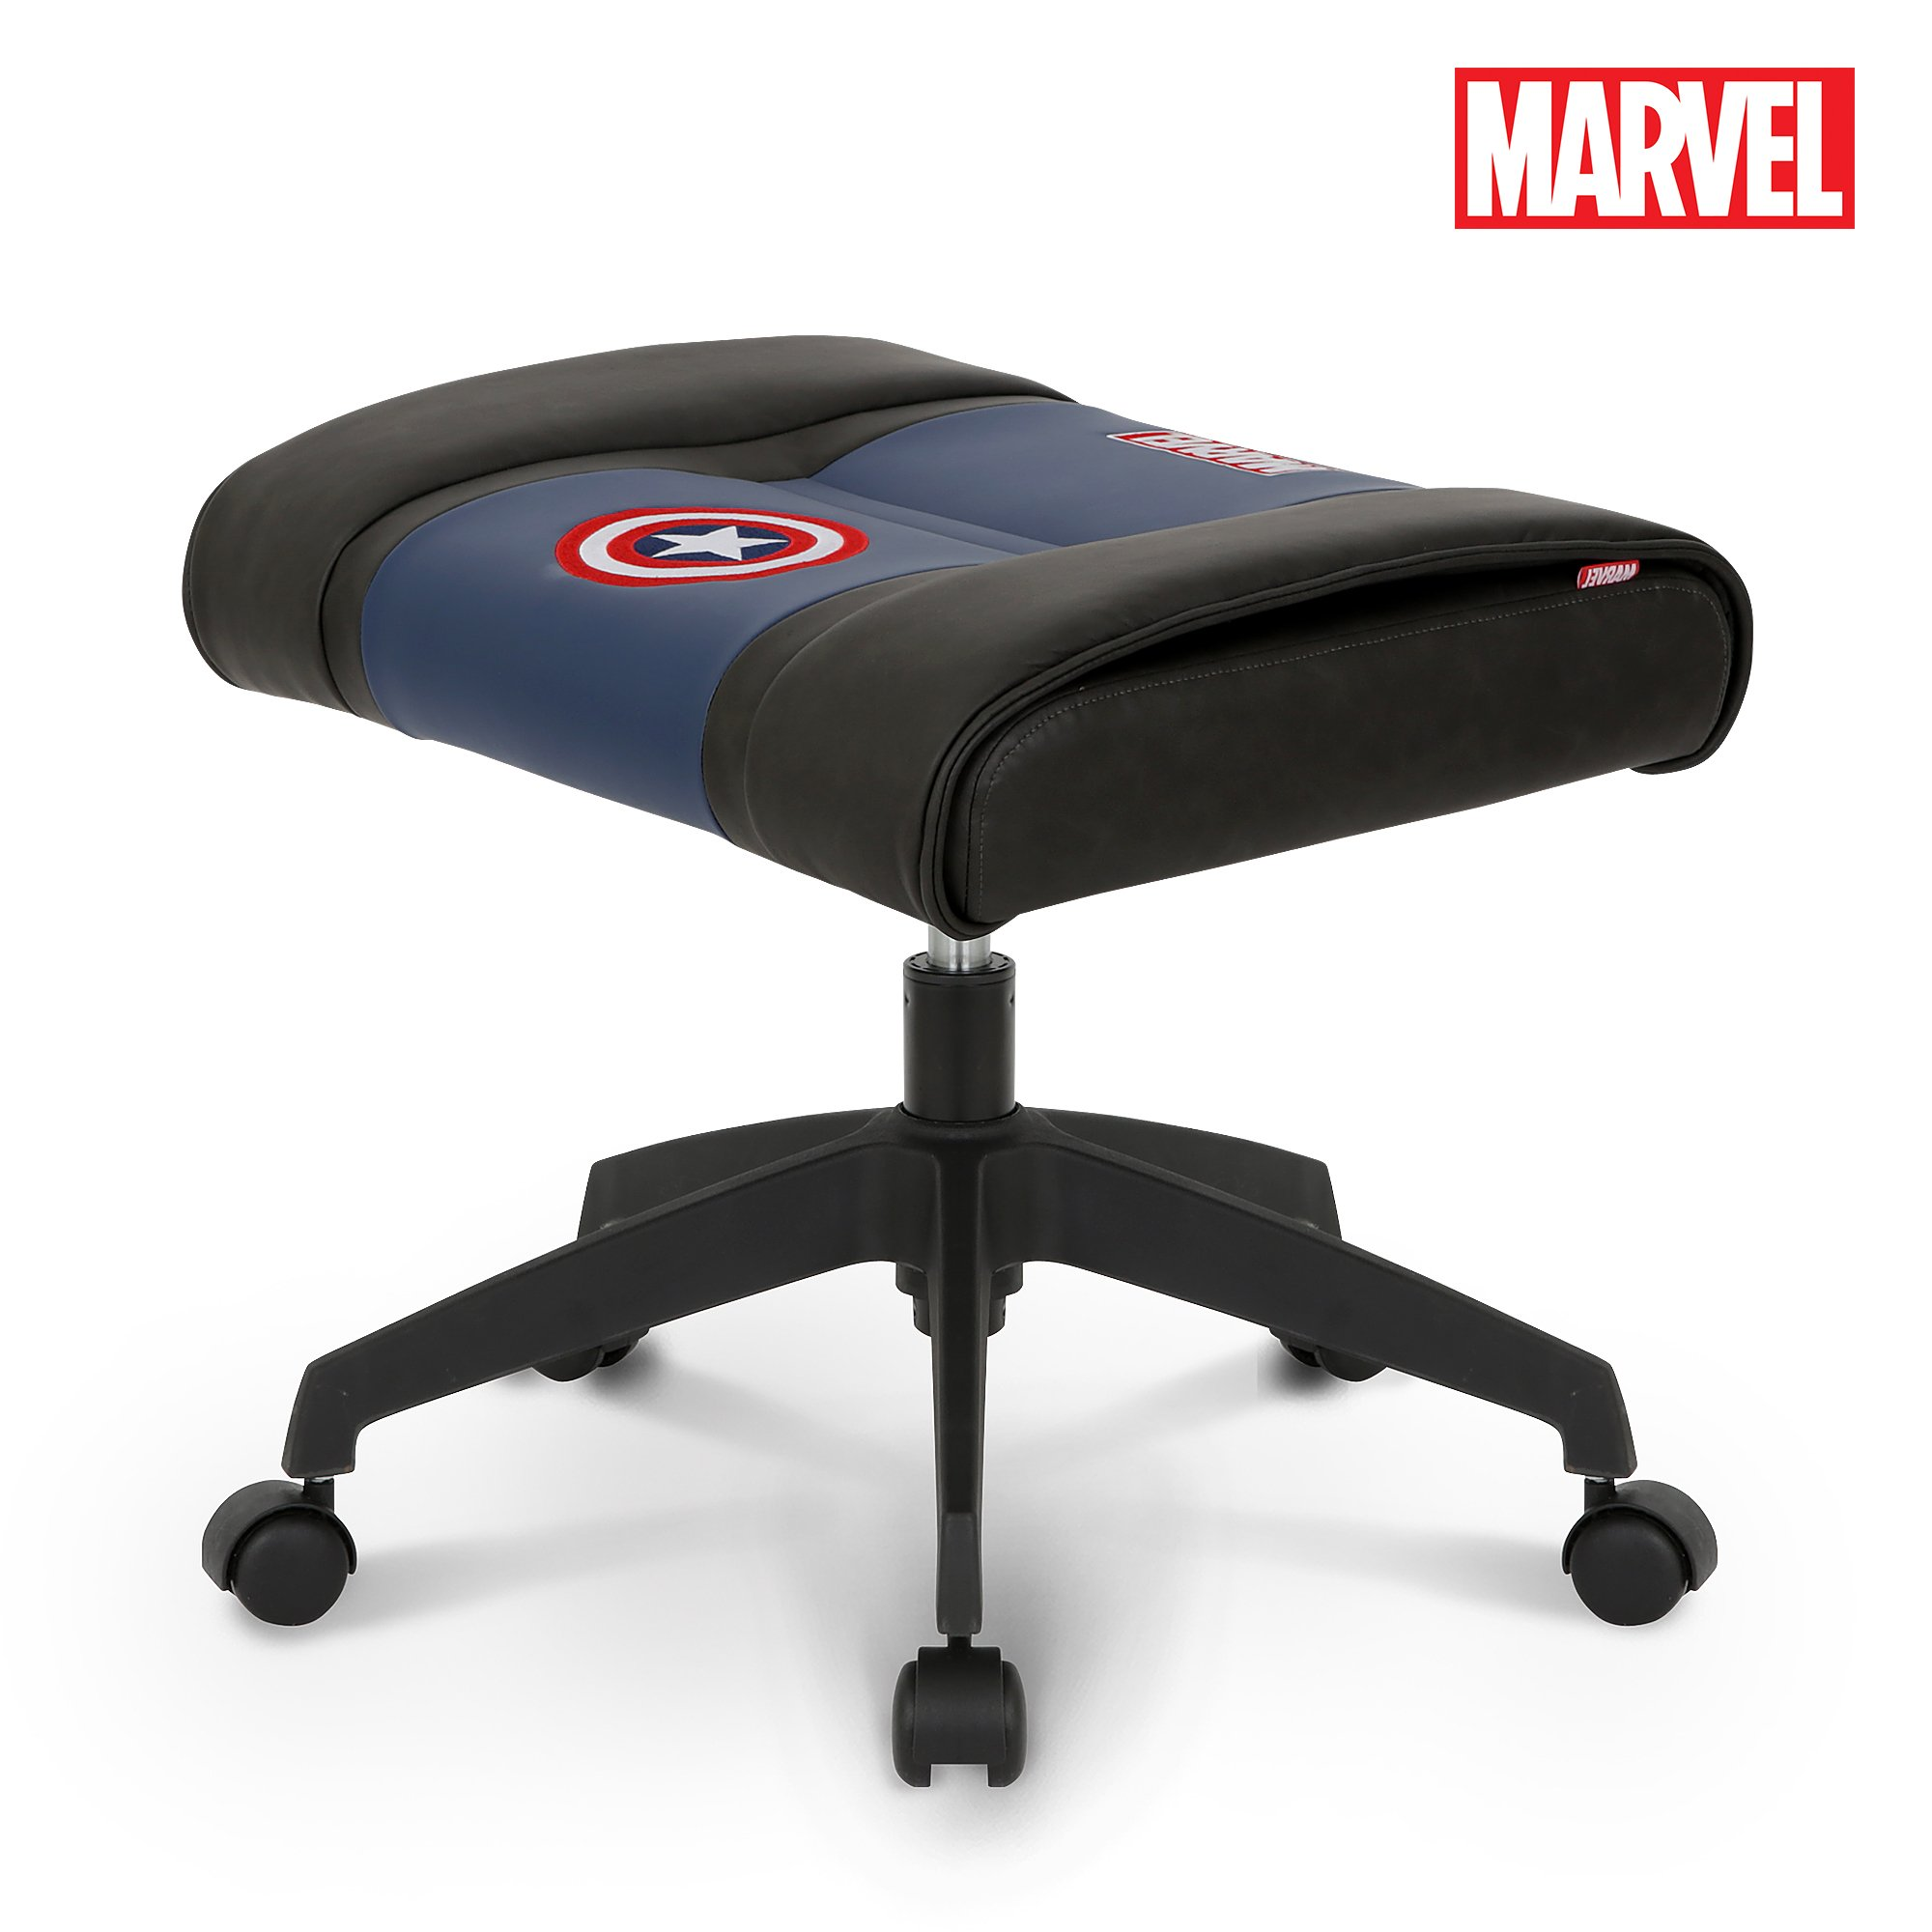 Licensed Marvel Ottoman Foot Rest Seat Stool Makeup Chair w/Wheel Makeup Chair : Height Adjustable Office Home Furniture Premium PU Leather, Neo Chair (Captain America, Blue)